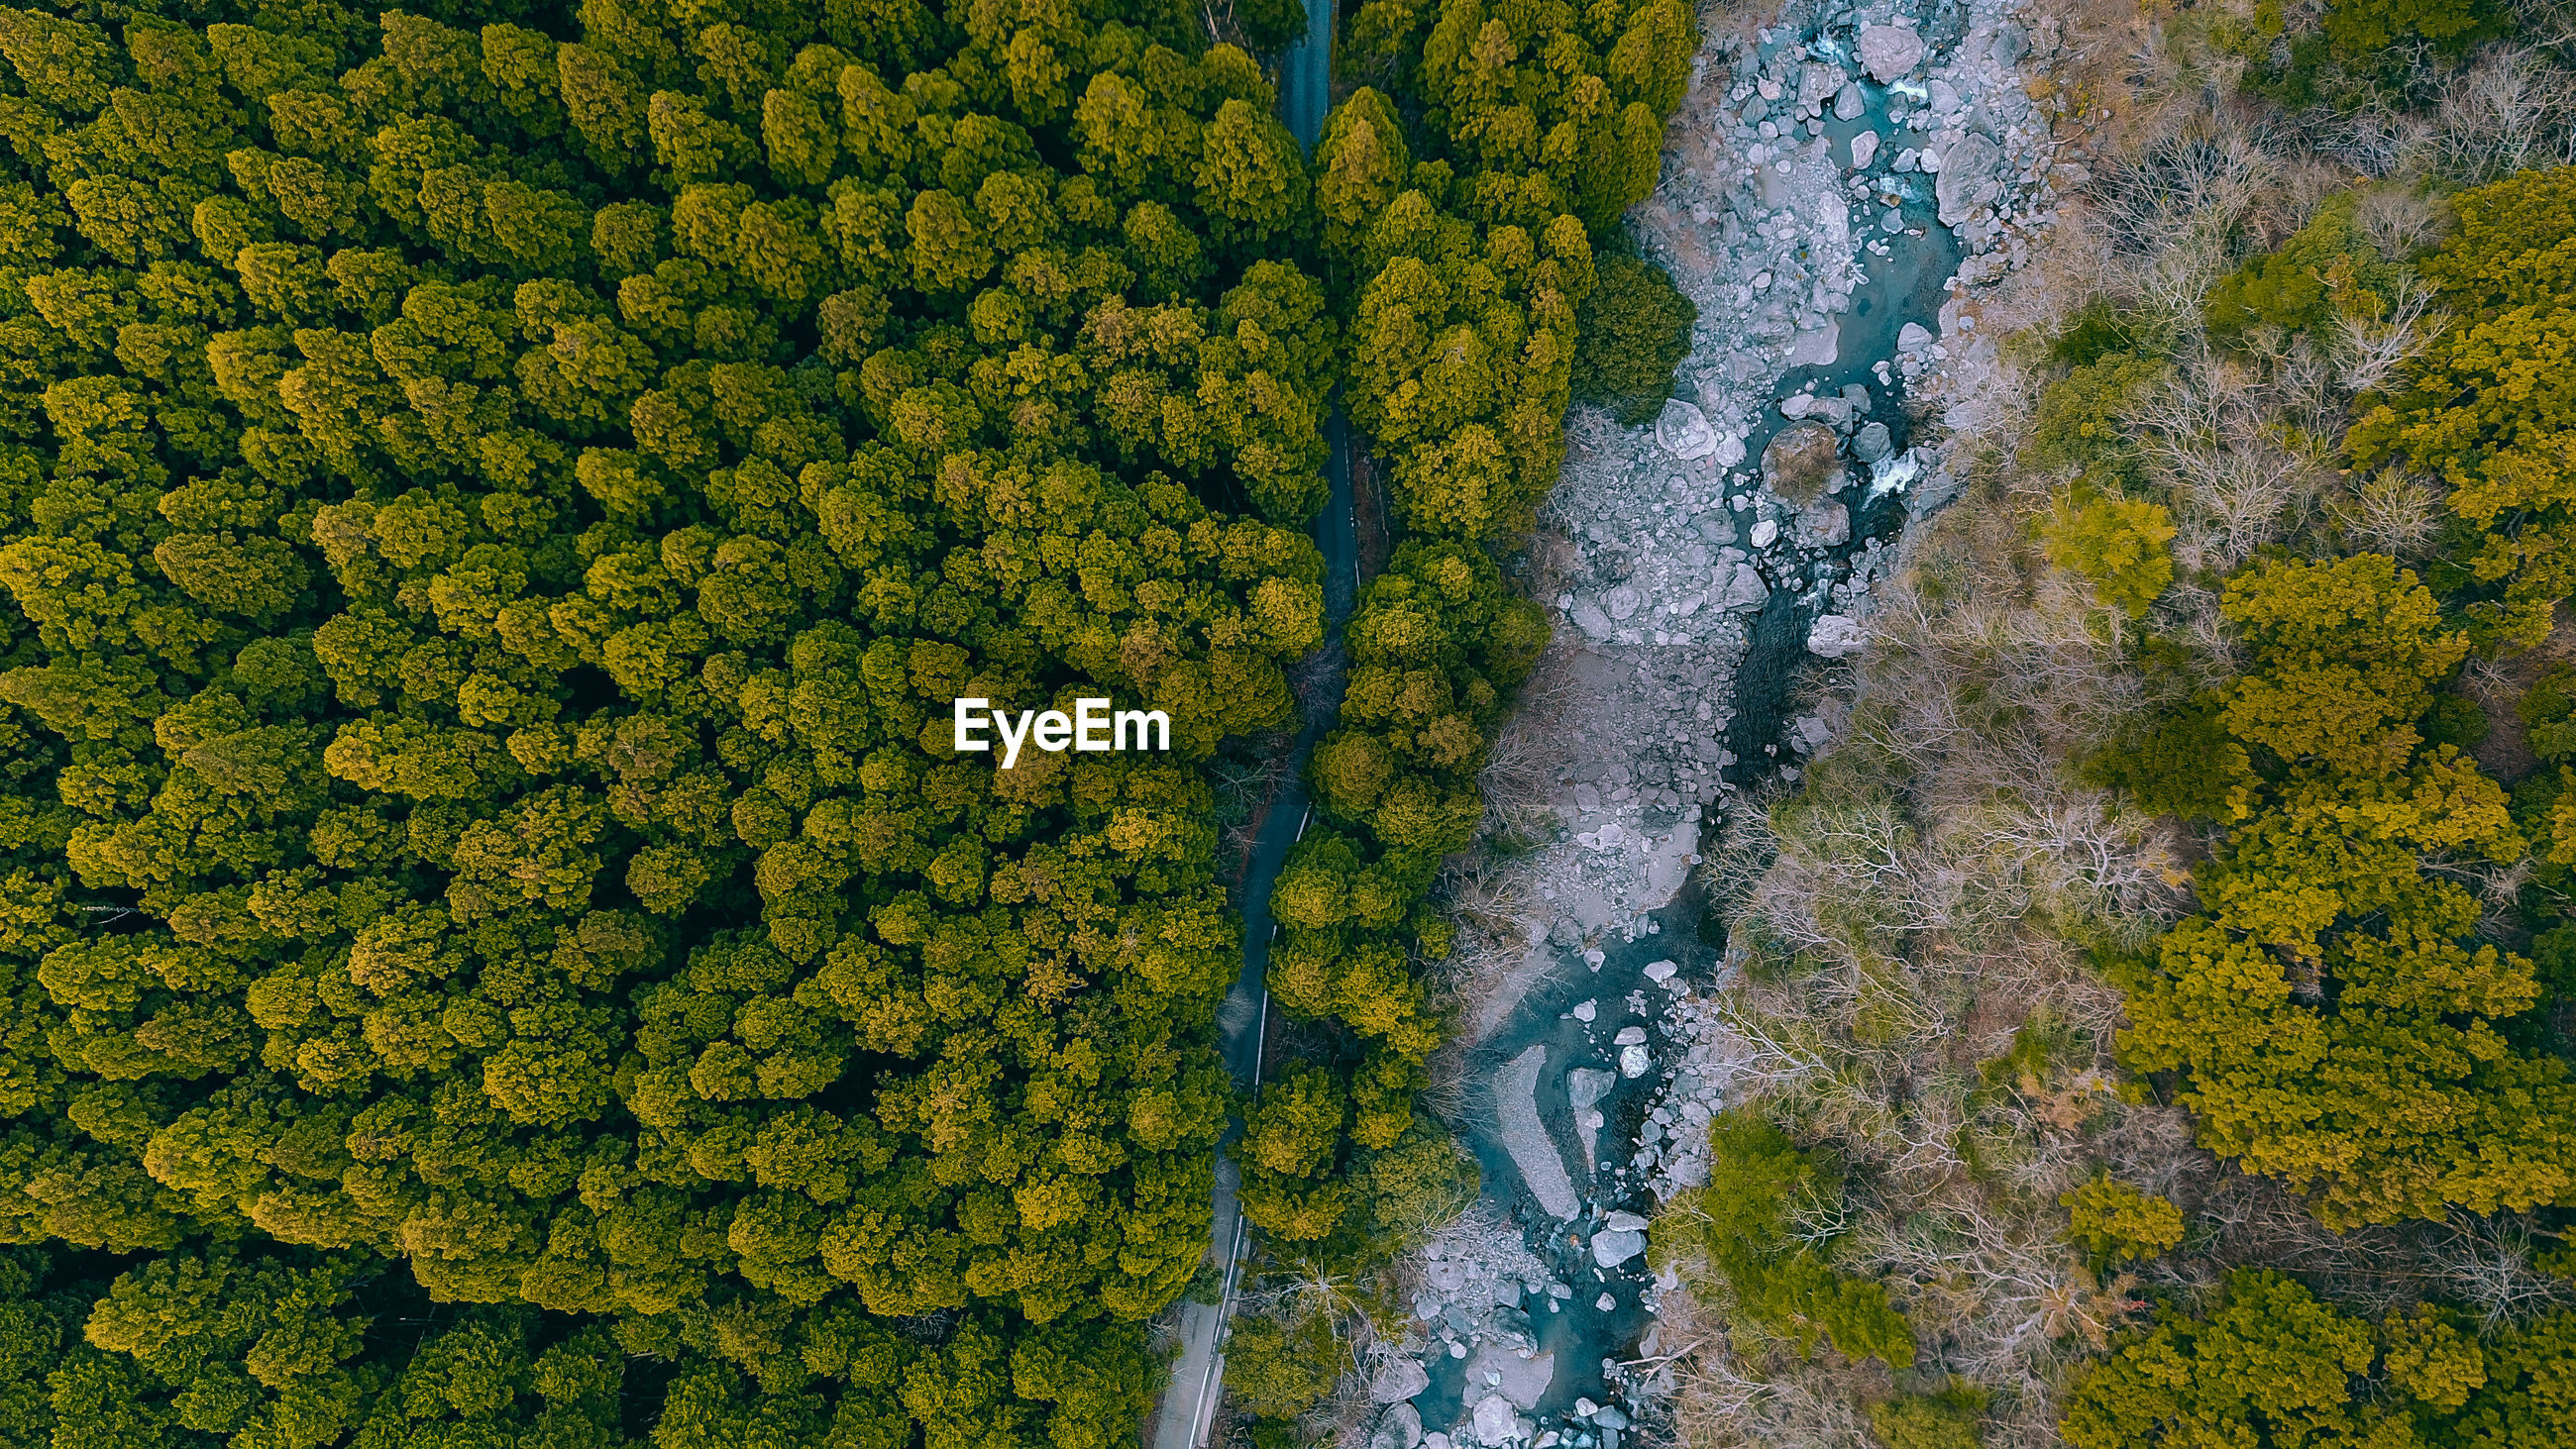 High angle view of river amidst trees in forest